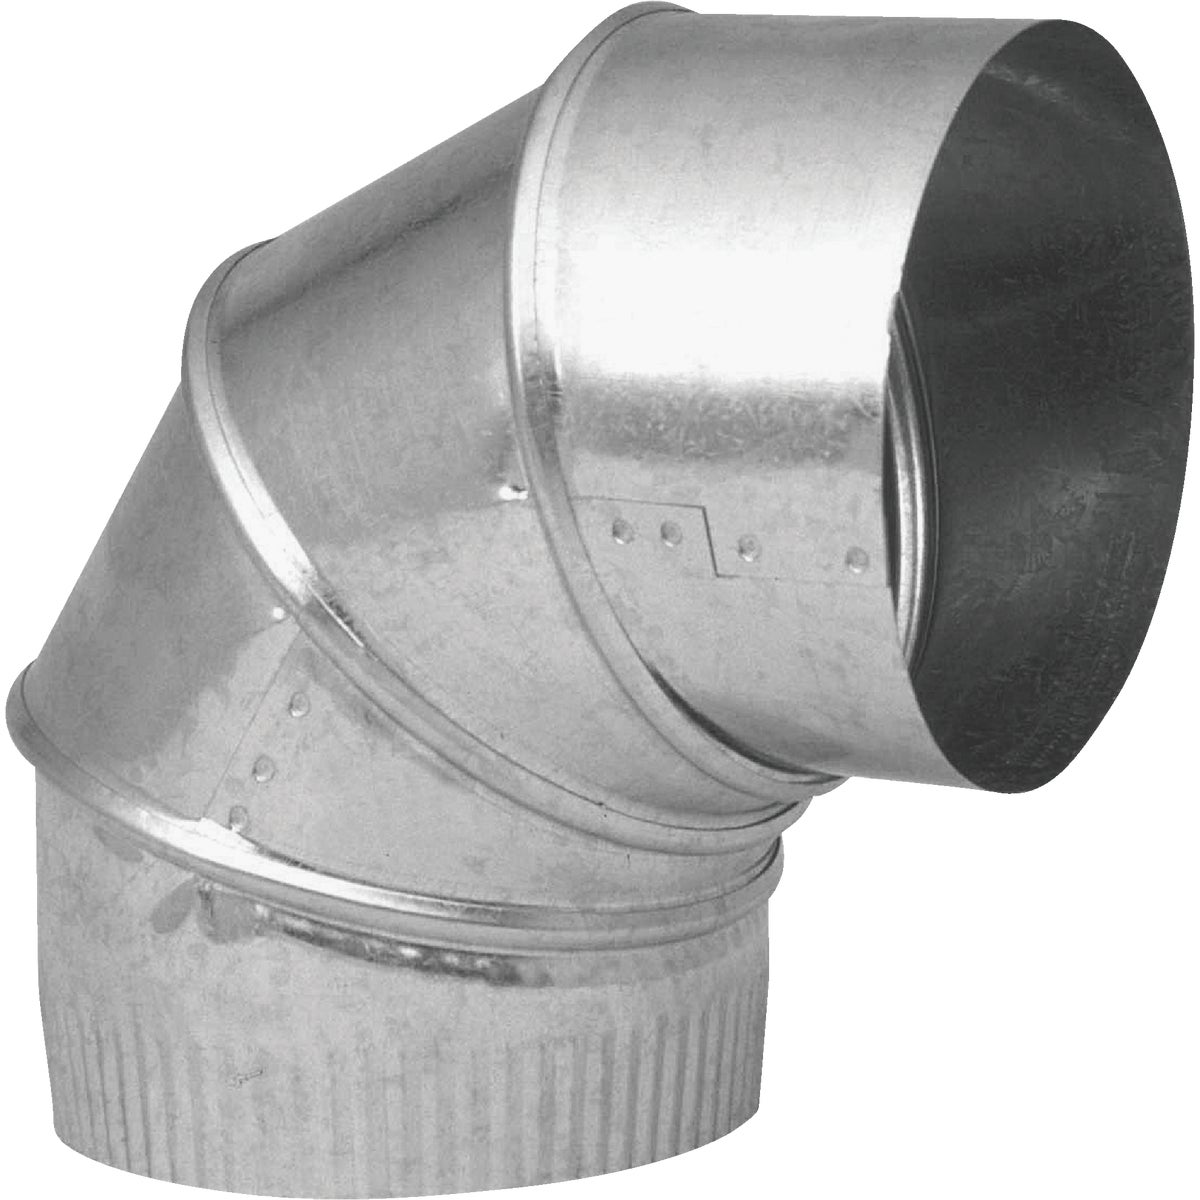 "5"" 30GA GALV ADJ ELBOW - GV0291-C by Imperial Mfg Group"